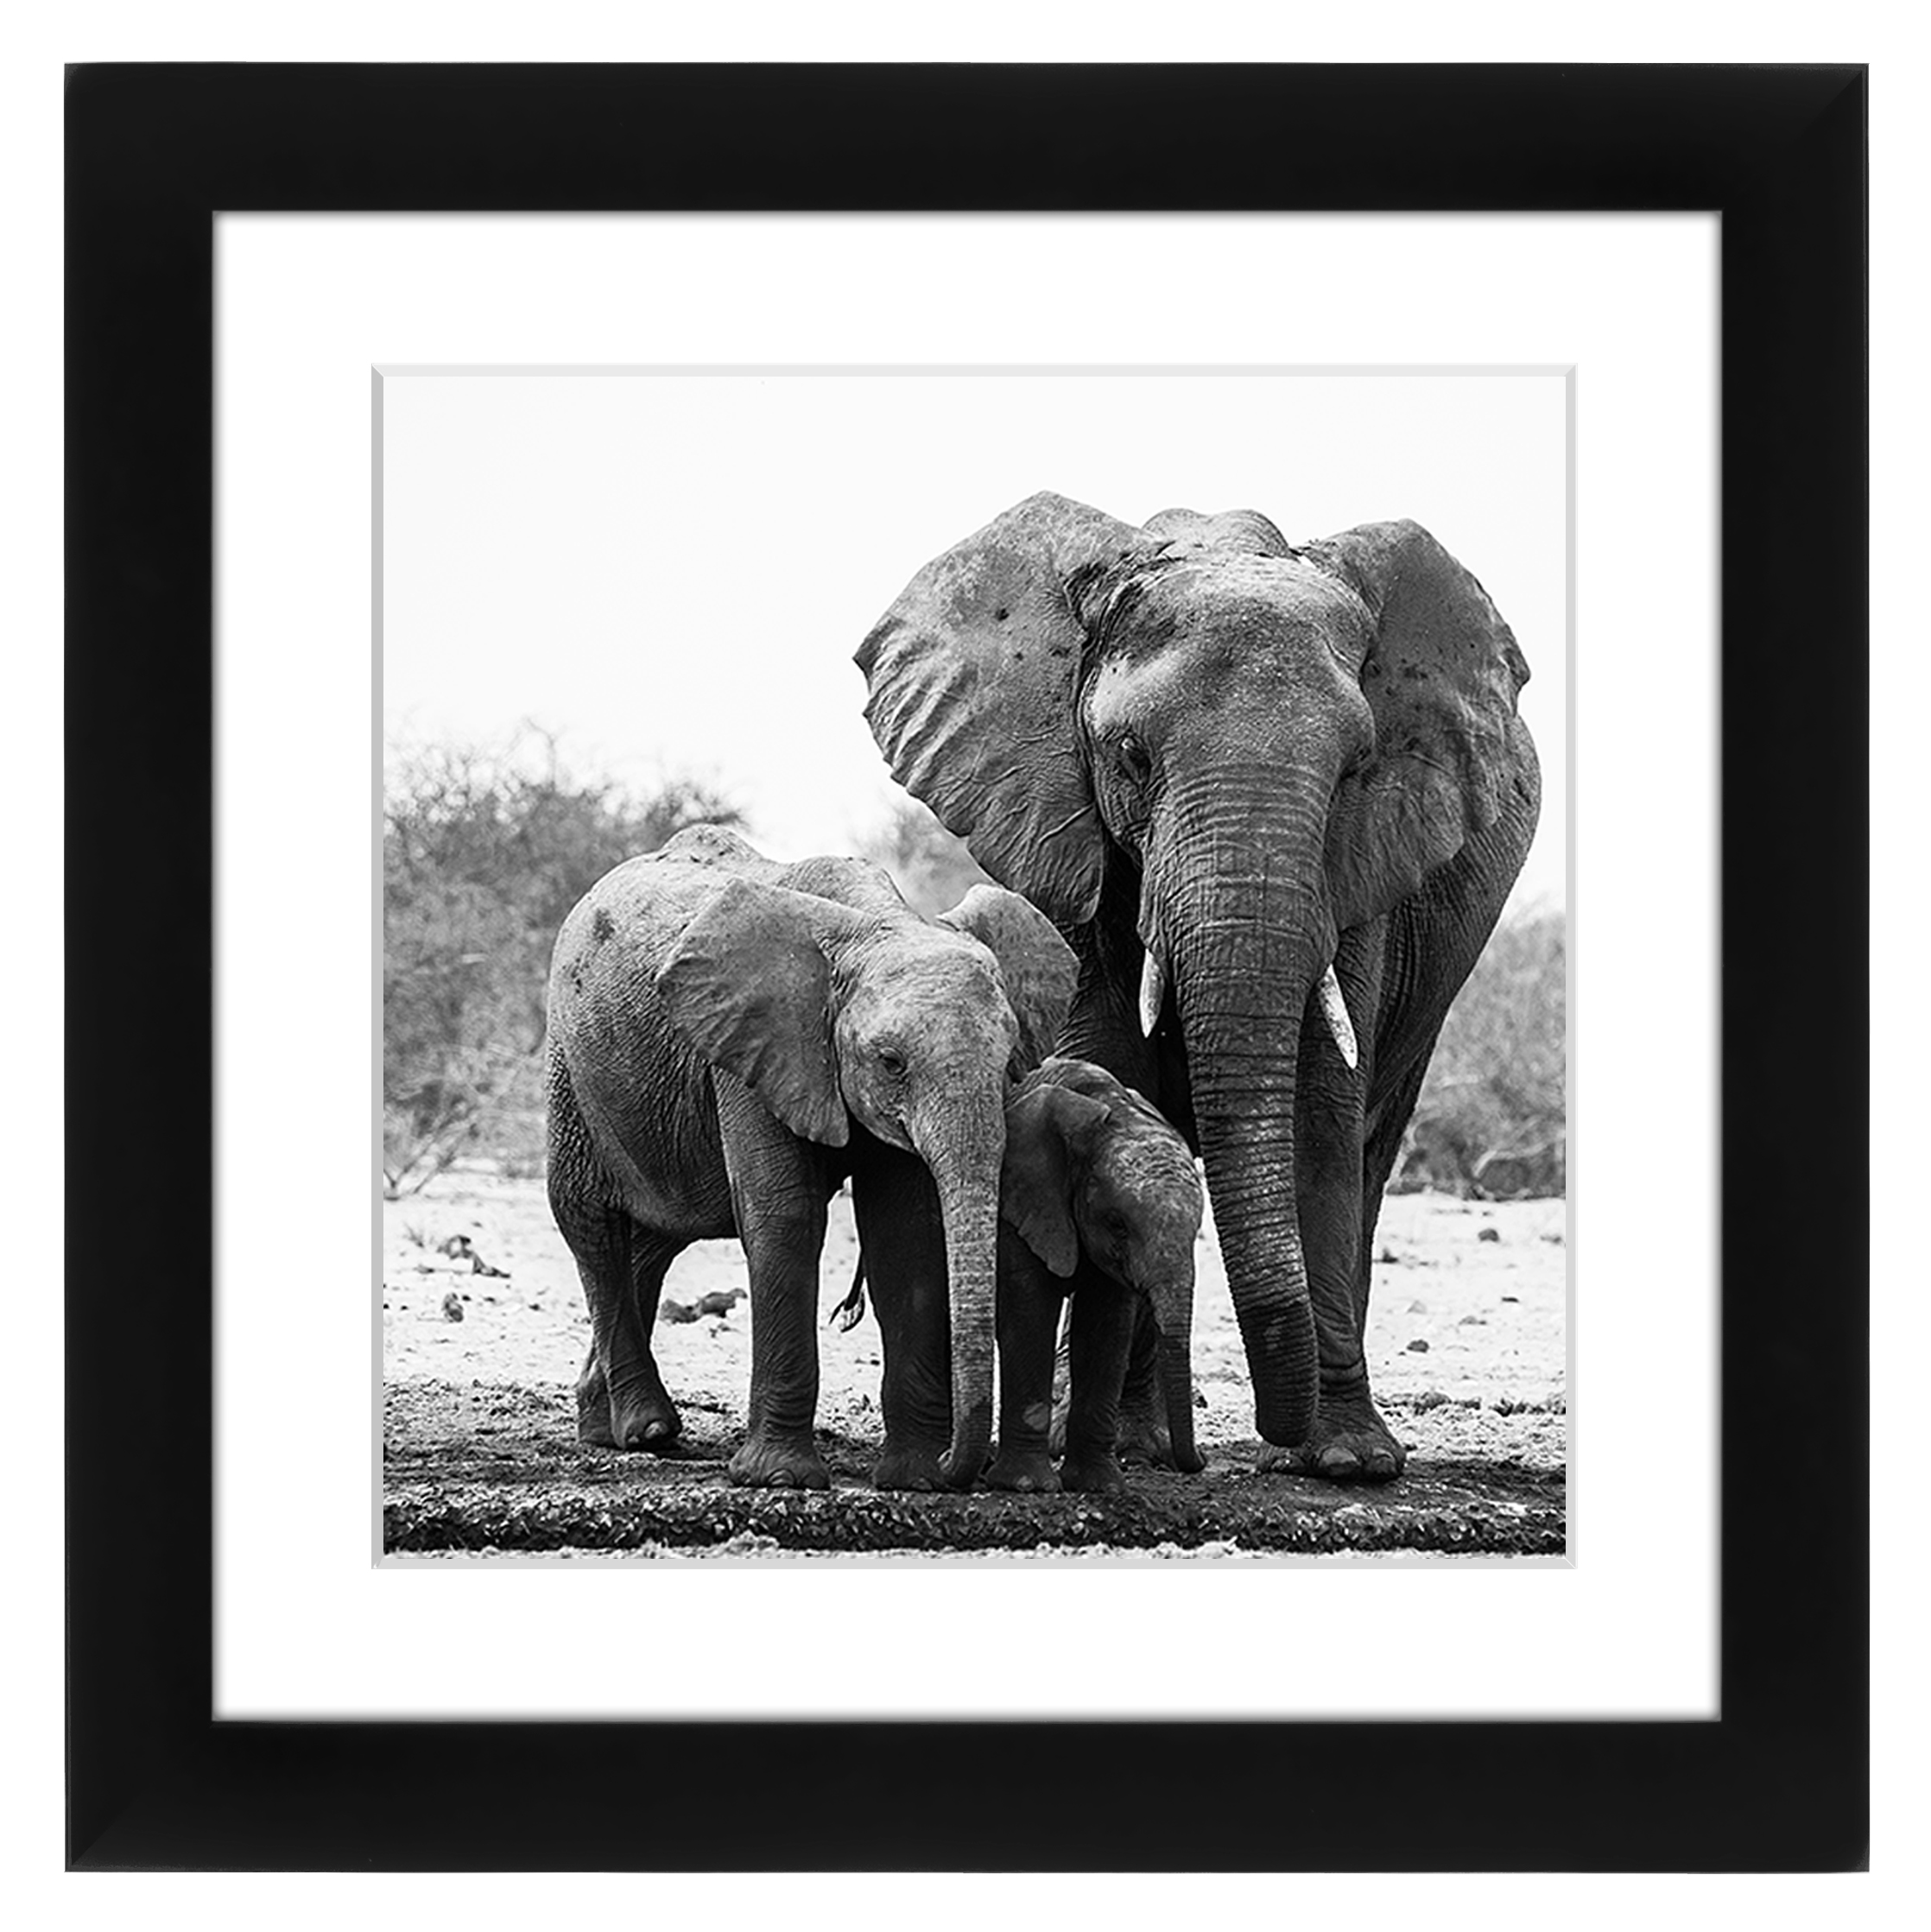 Americanflat 11x11 Black Picture Frame Matted to Fit Pictures 8x8 Inches or 11x11 Without... by Supplier Generic